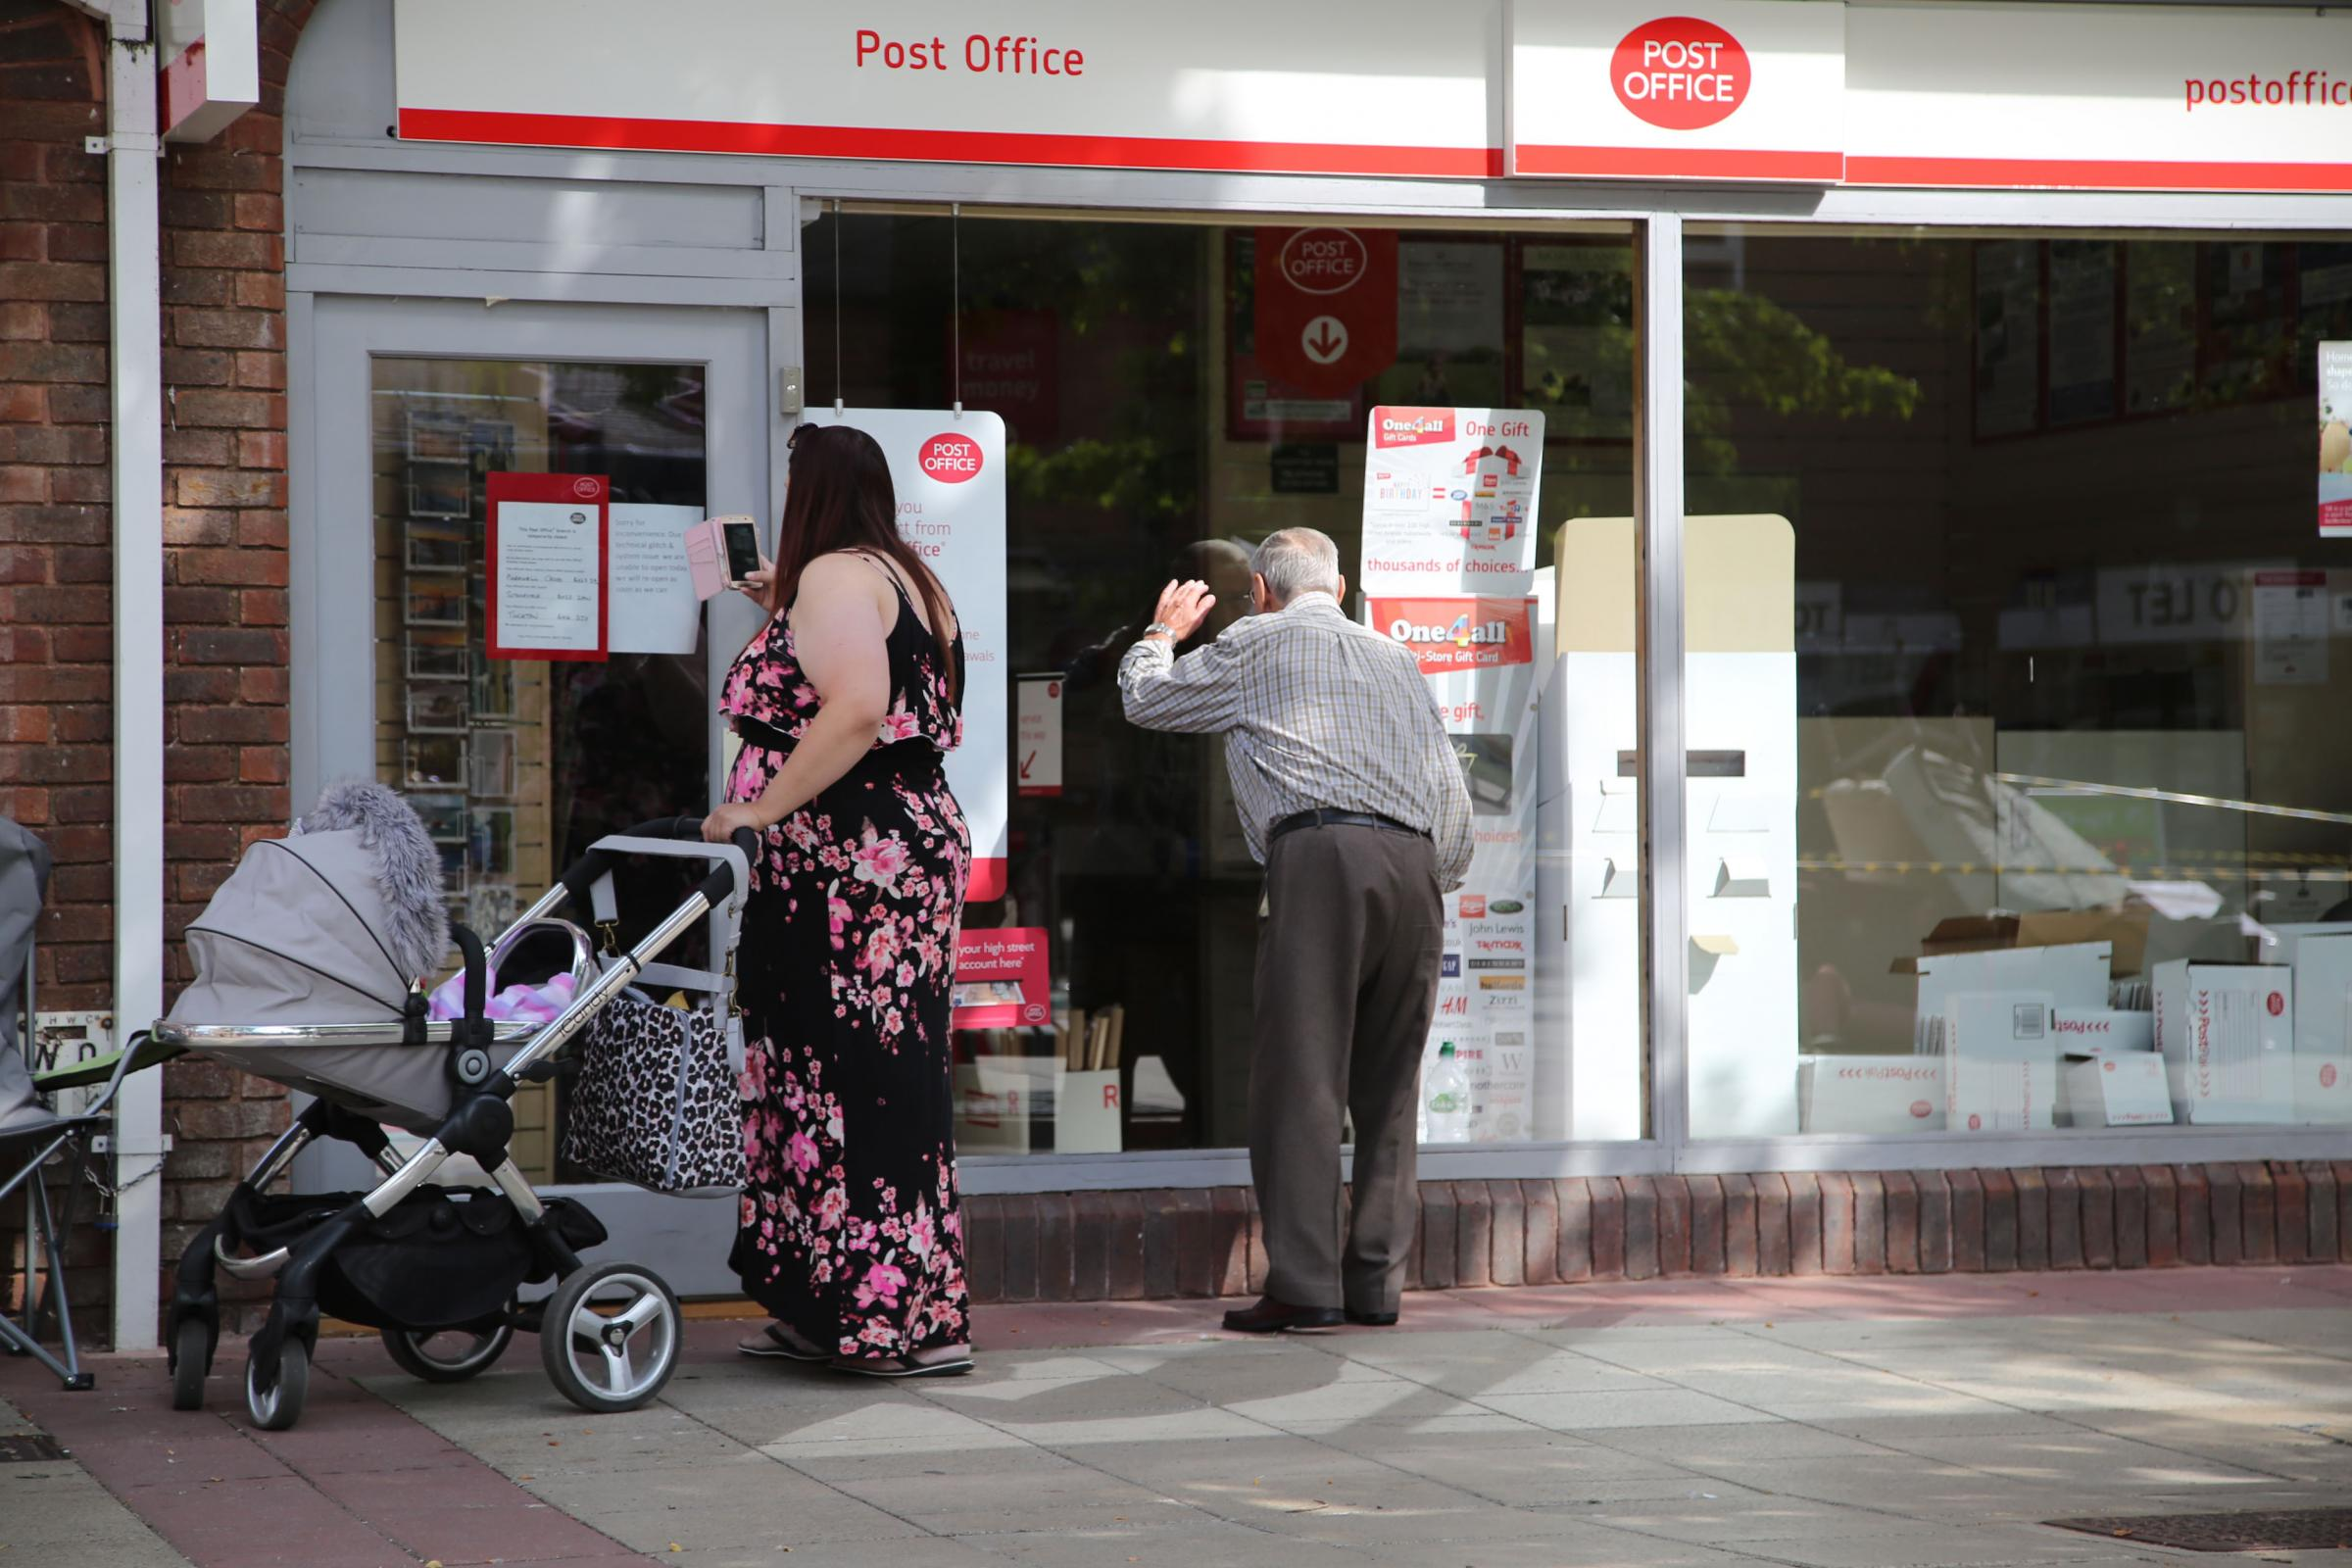 The Post Office at Saxon Square in Christchurch which has closed due to a 'technical glitch and system issues'..